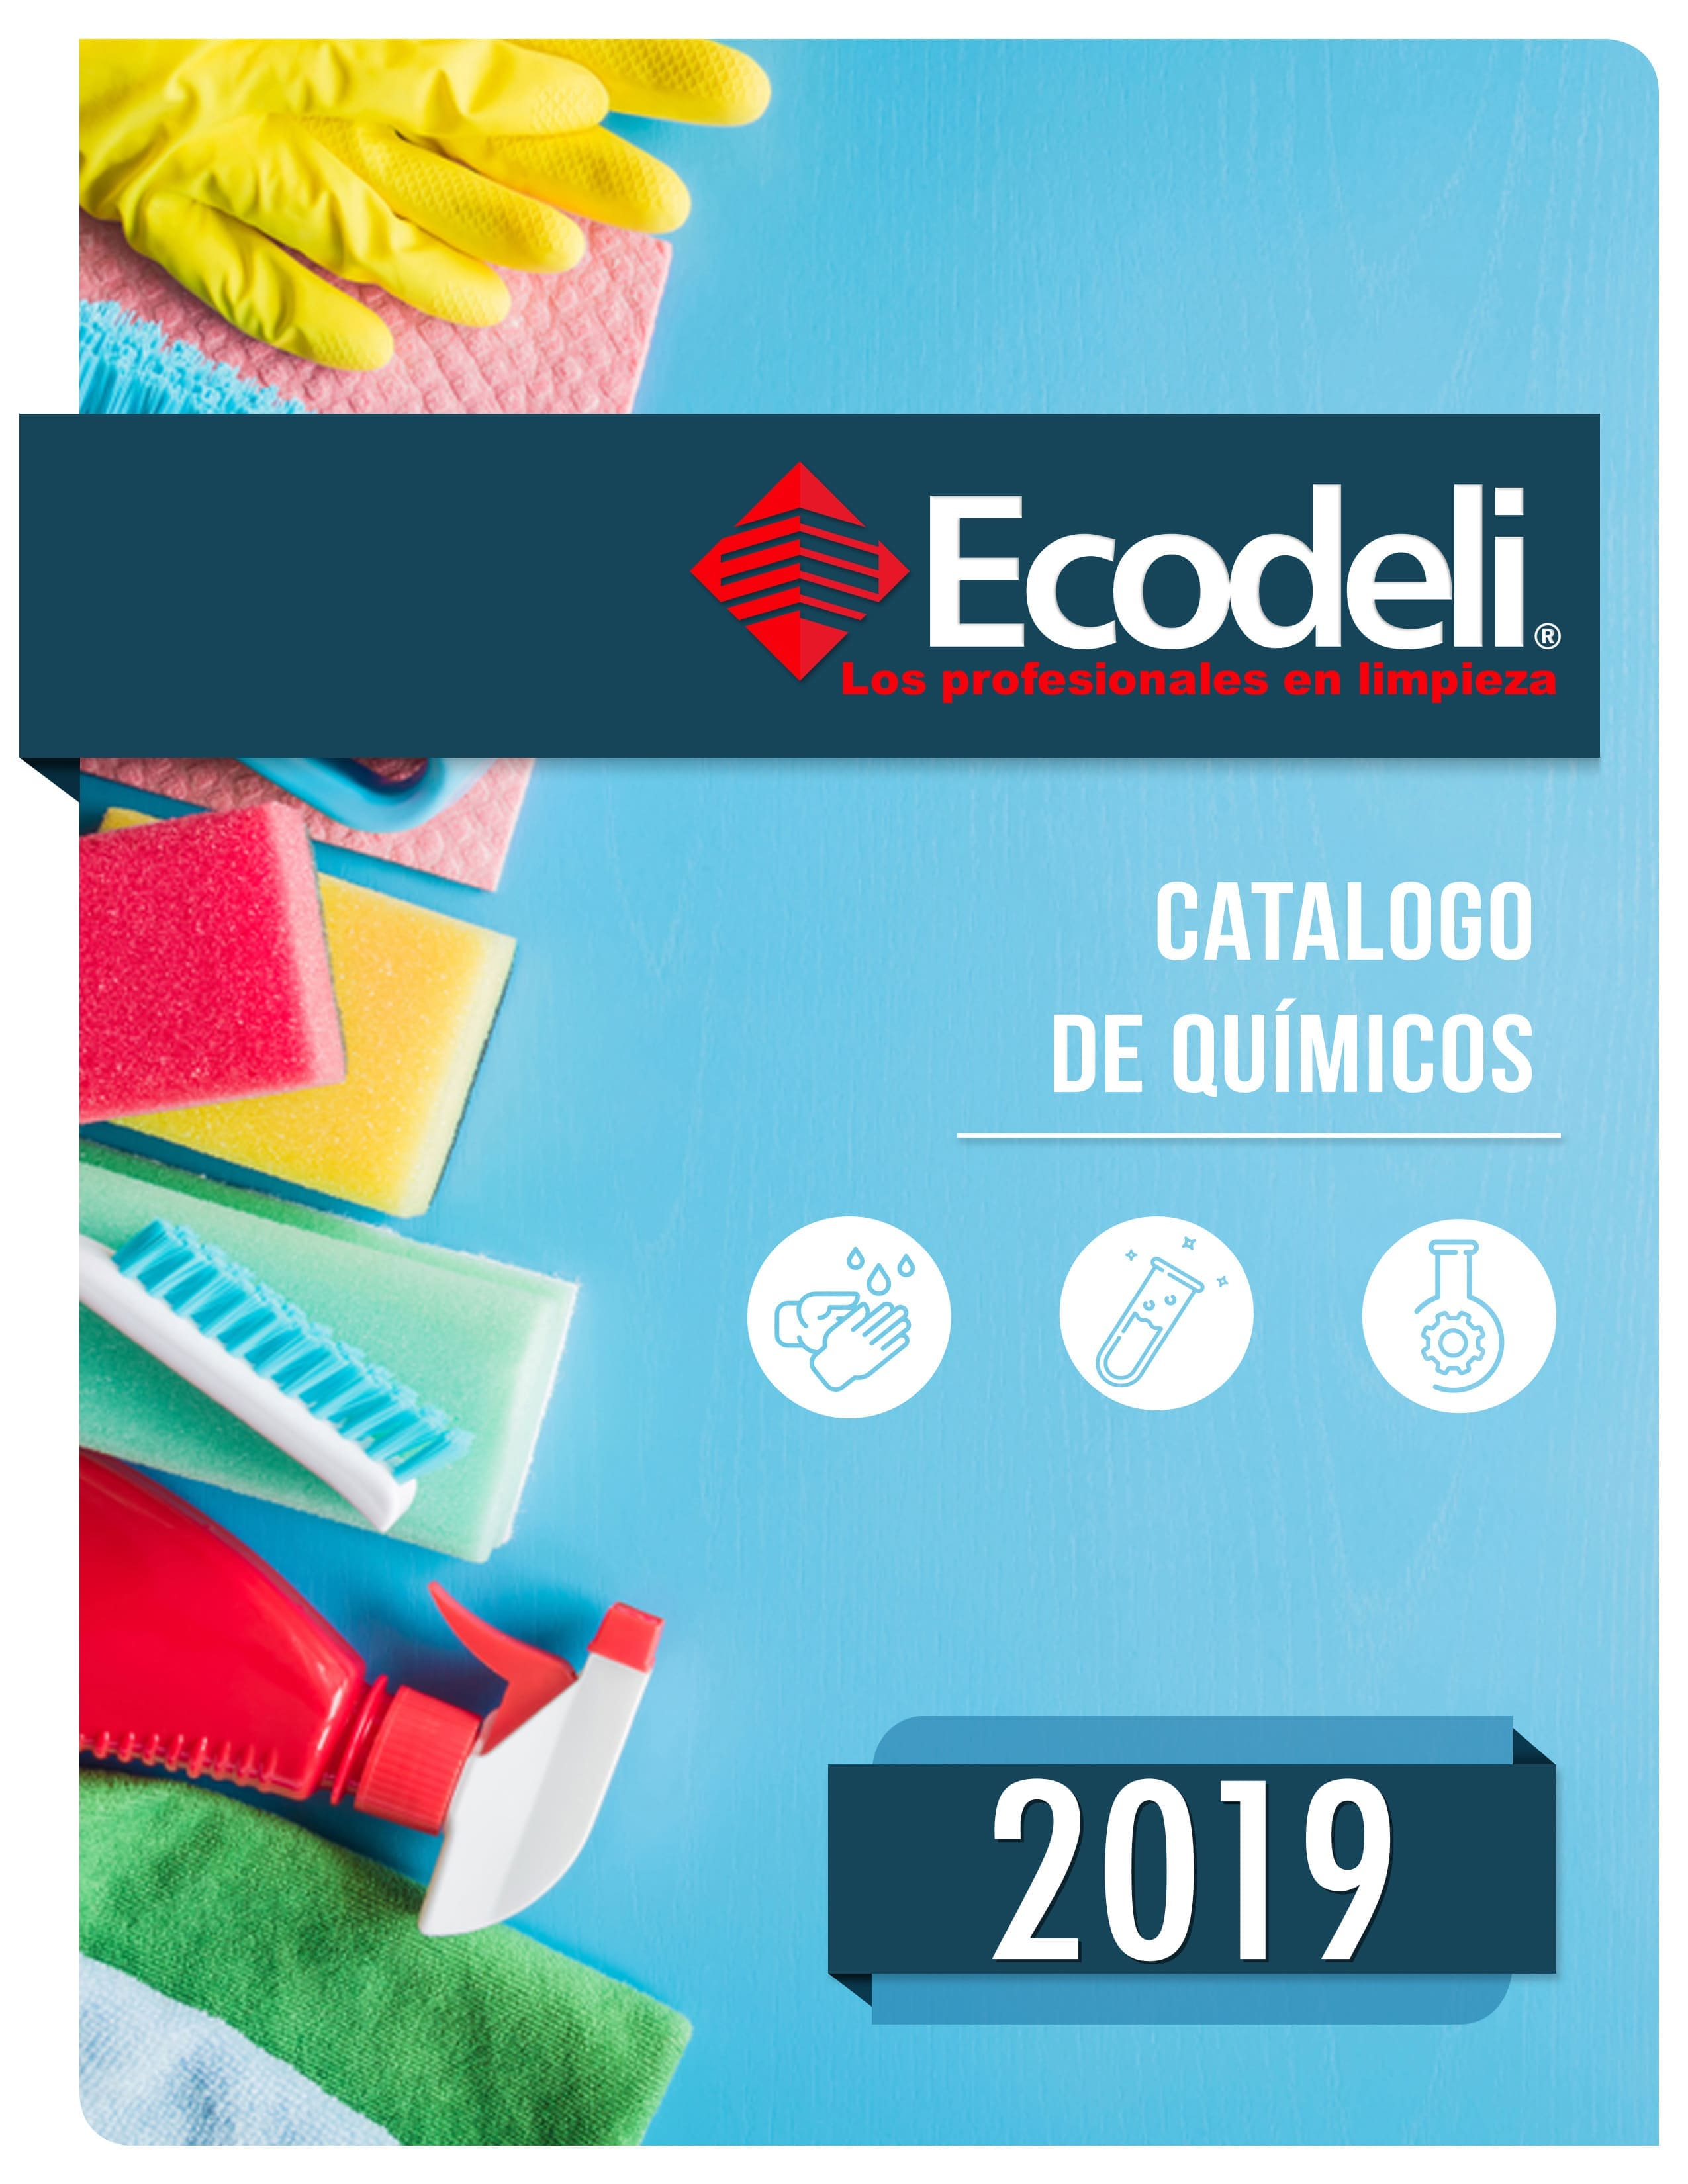 CatalogoQuimicos2019